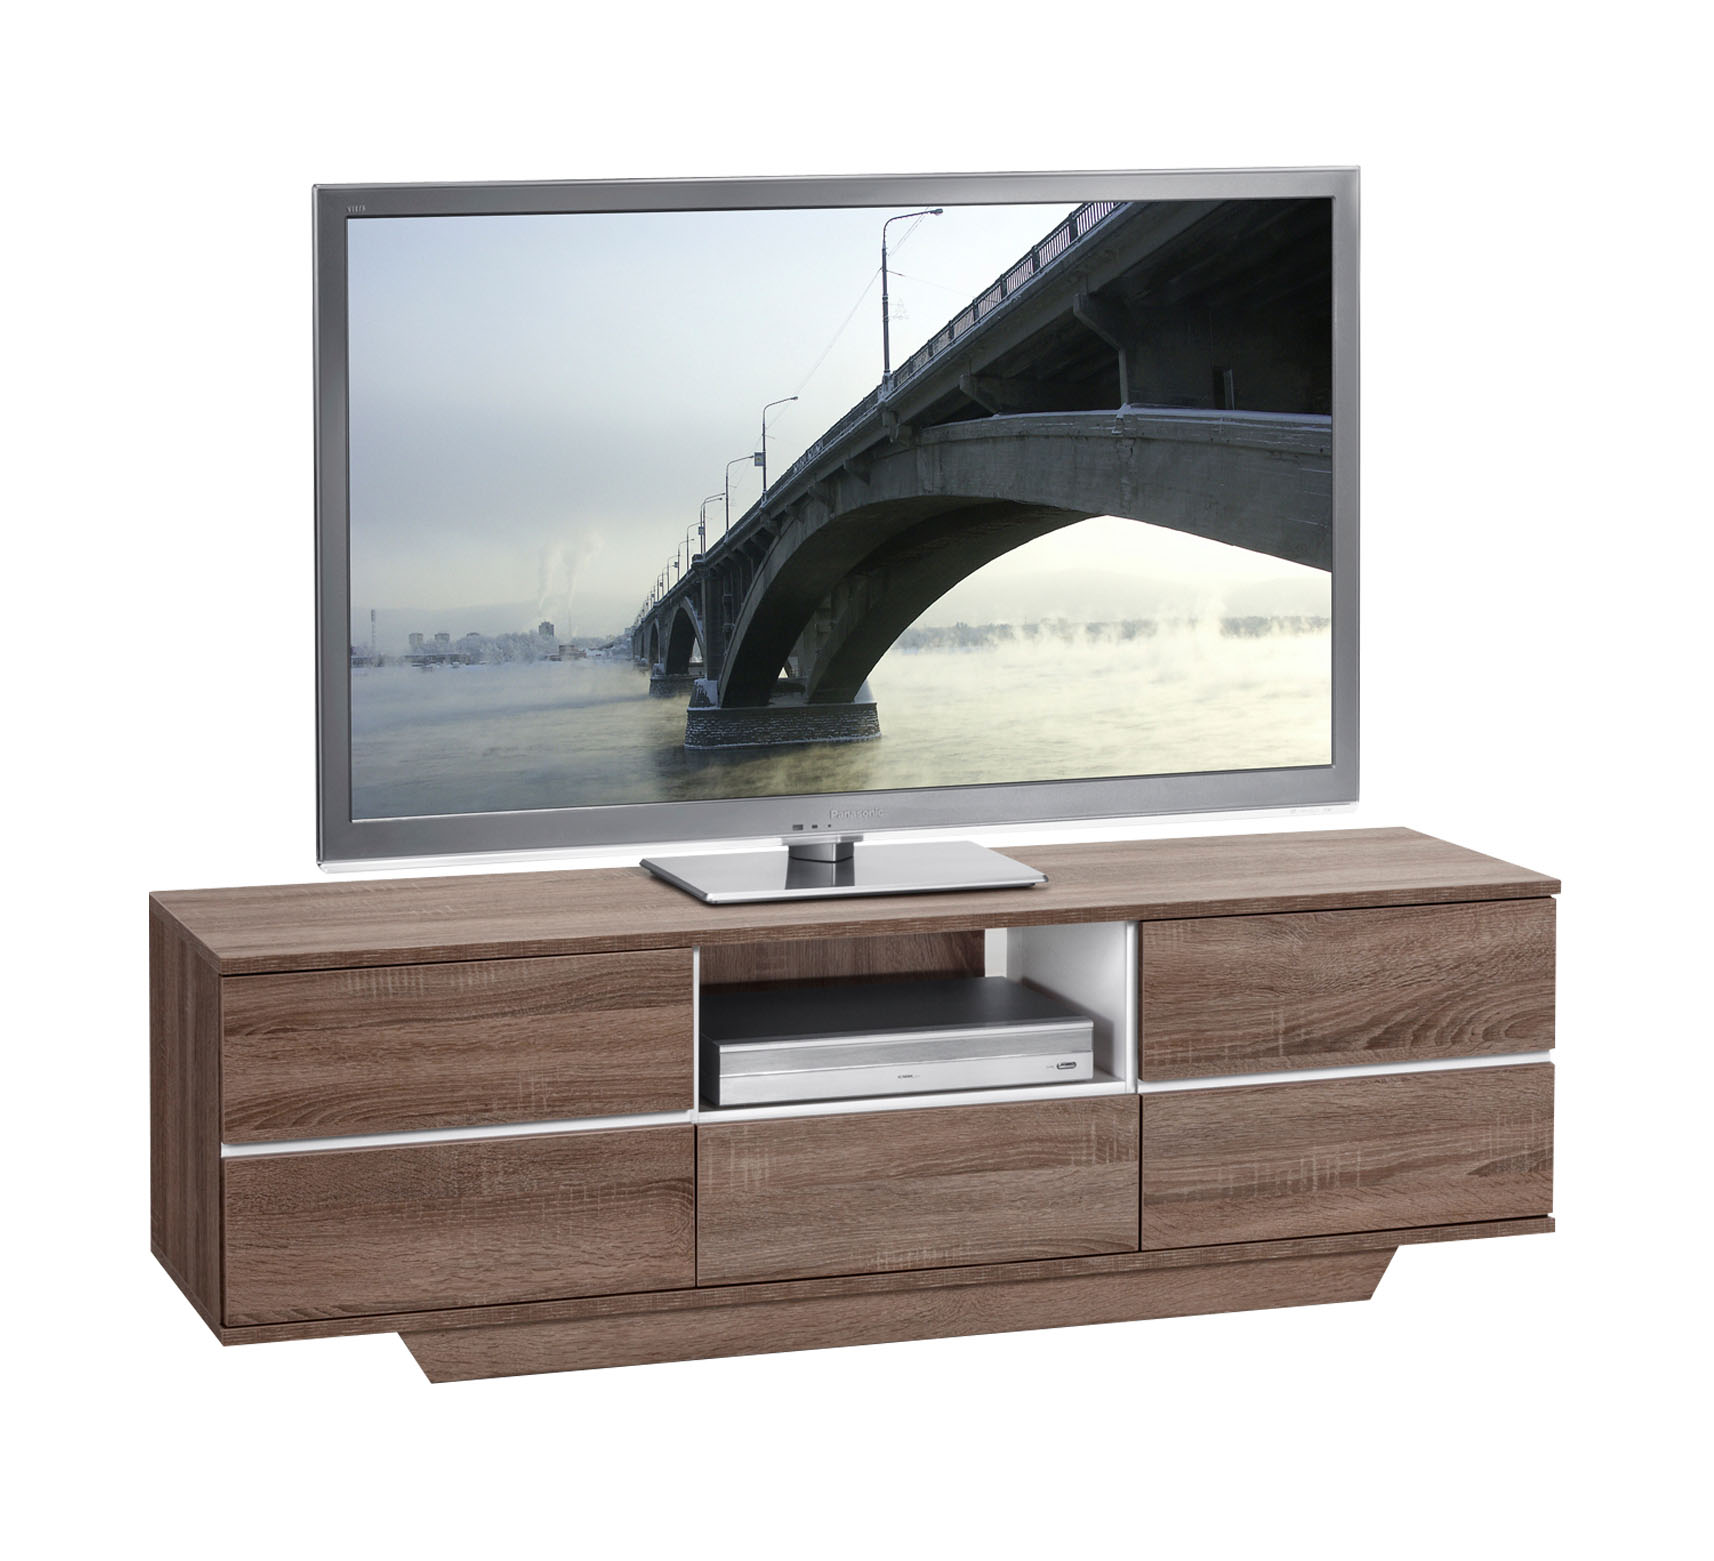 tv lowboard unterschrank ablage bank hifi regal mod tv652 sonoma tr ffel eiche ebay. Black Bedroom Furniture Sets. Home Design Ideas